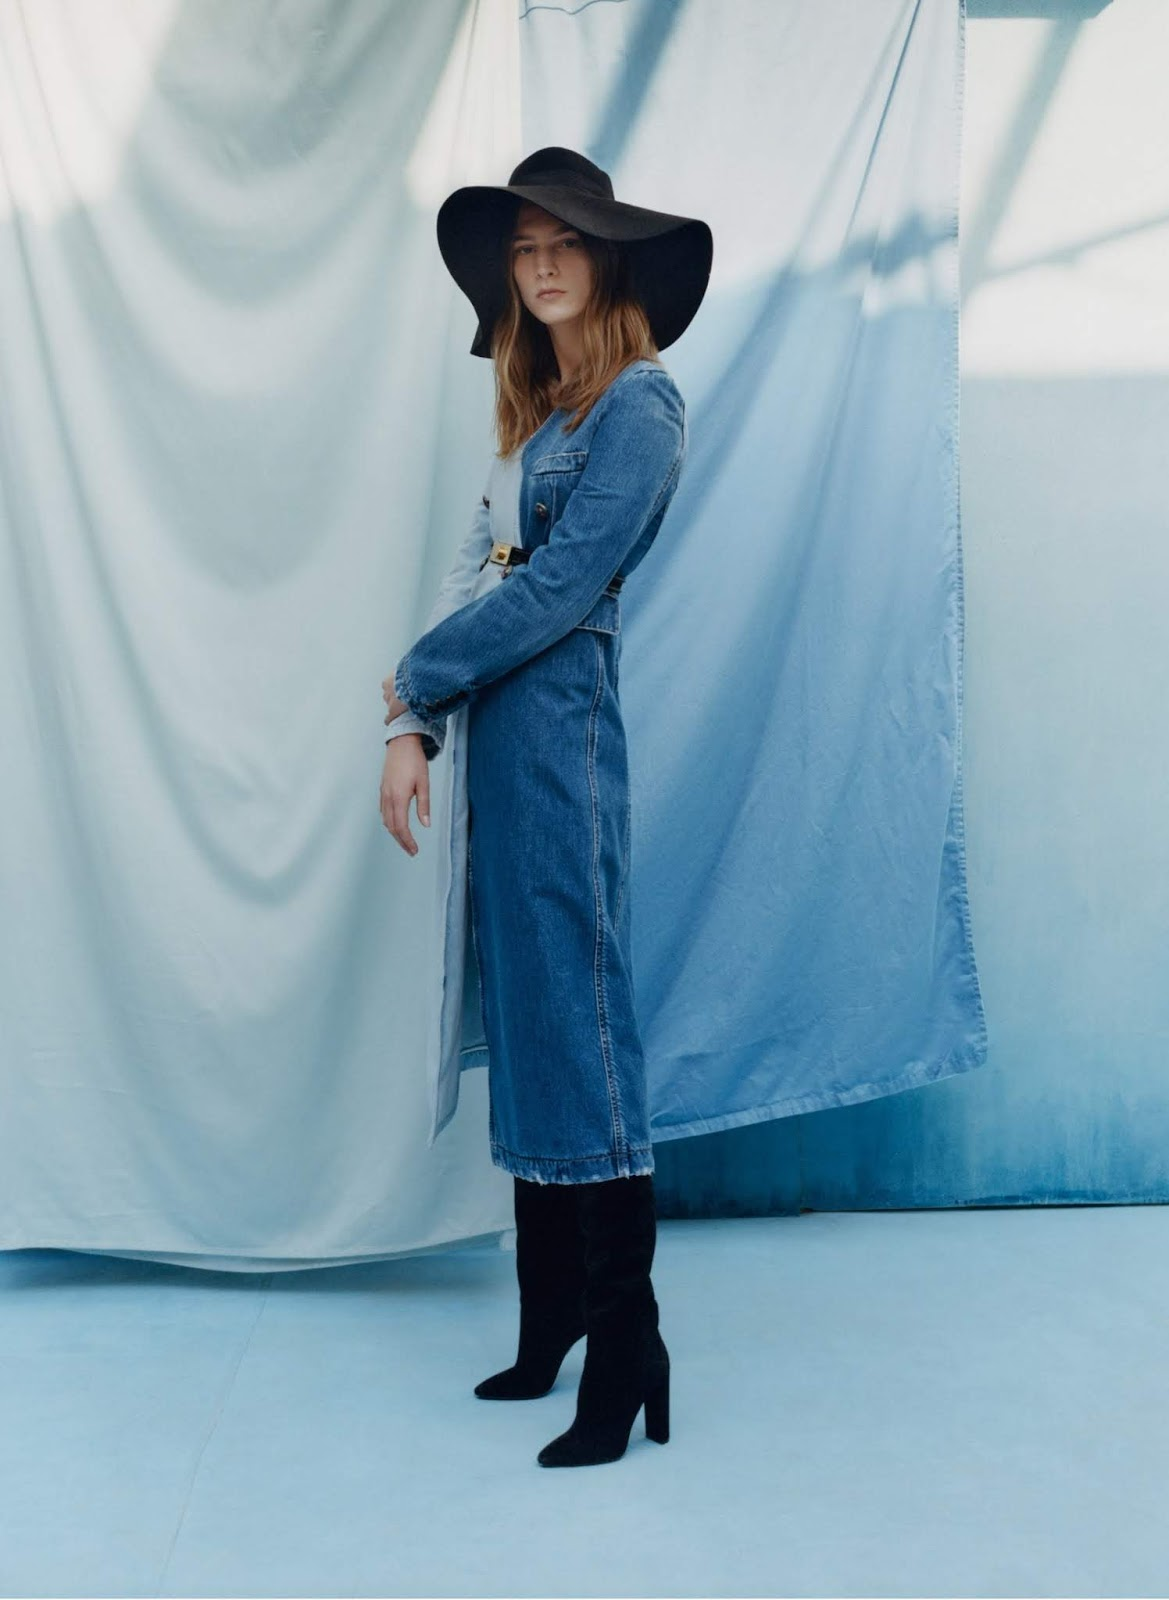 Ros Georgiou - Givenchy trench coat. Gucci hat. Saint Laurent by Anthony Vaccarello boots